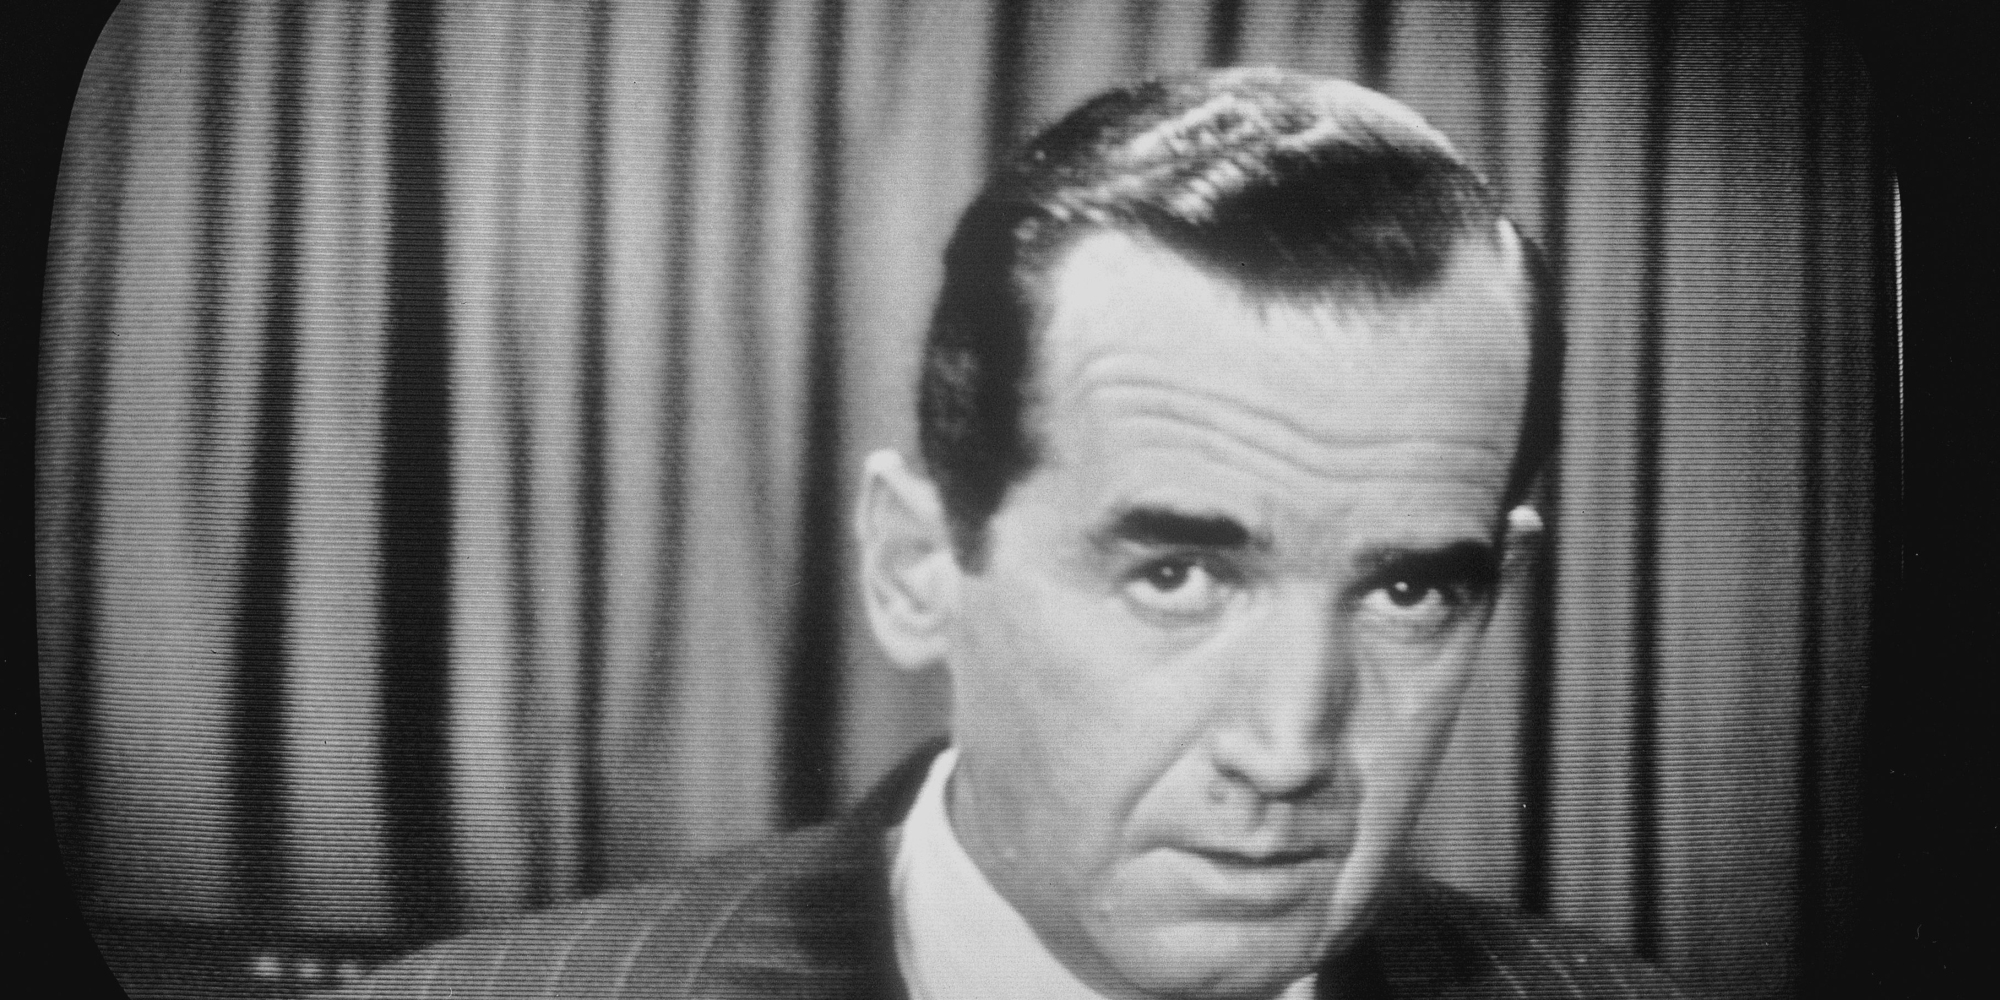 edward r murrow Edward r murrow probably wouldn't fit comfortably today in an industry - broadcast journalism - he largely created.